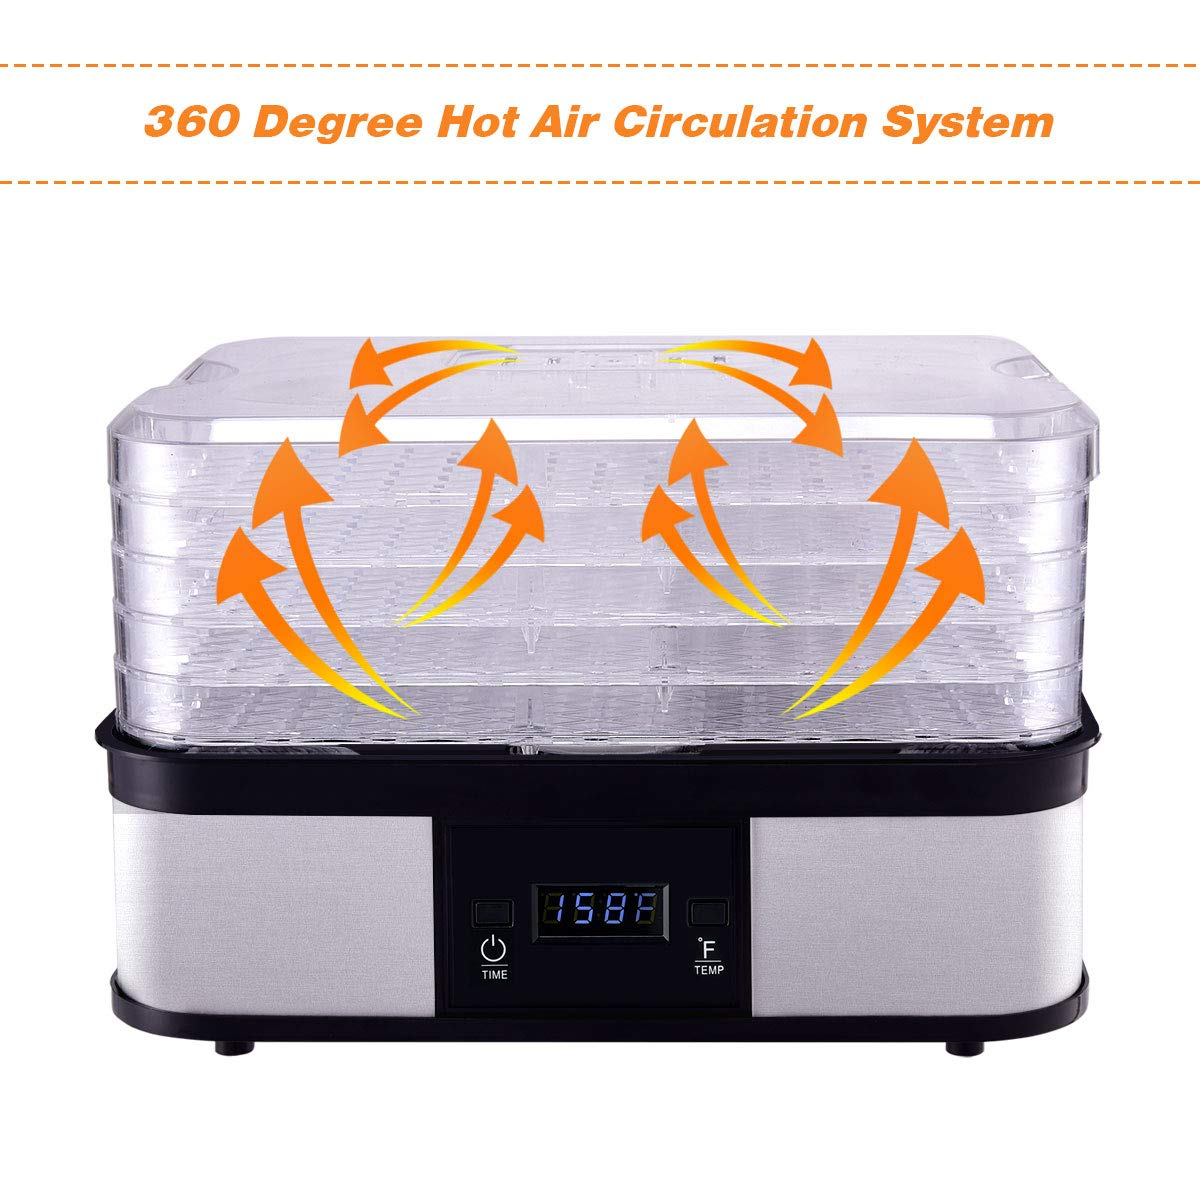 HAPPYGRILL Food Dehydrator Machine, Best Electric 5-Tier Home Food Meat Beef Jerky Fruit Vegetable Dehydrator Dryer Preserver, Professional 360 Degree Hot Air Circulation System, Easy to Clean(Black) by HAPPYGRILL (Image #7)